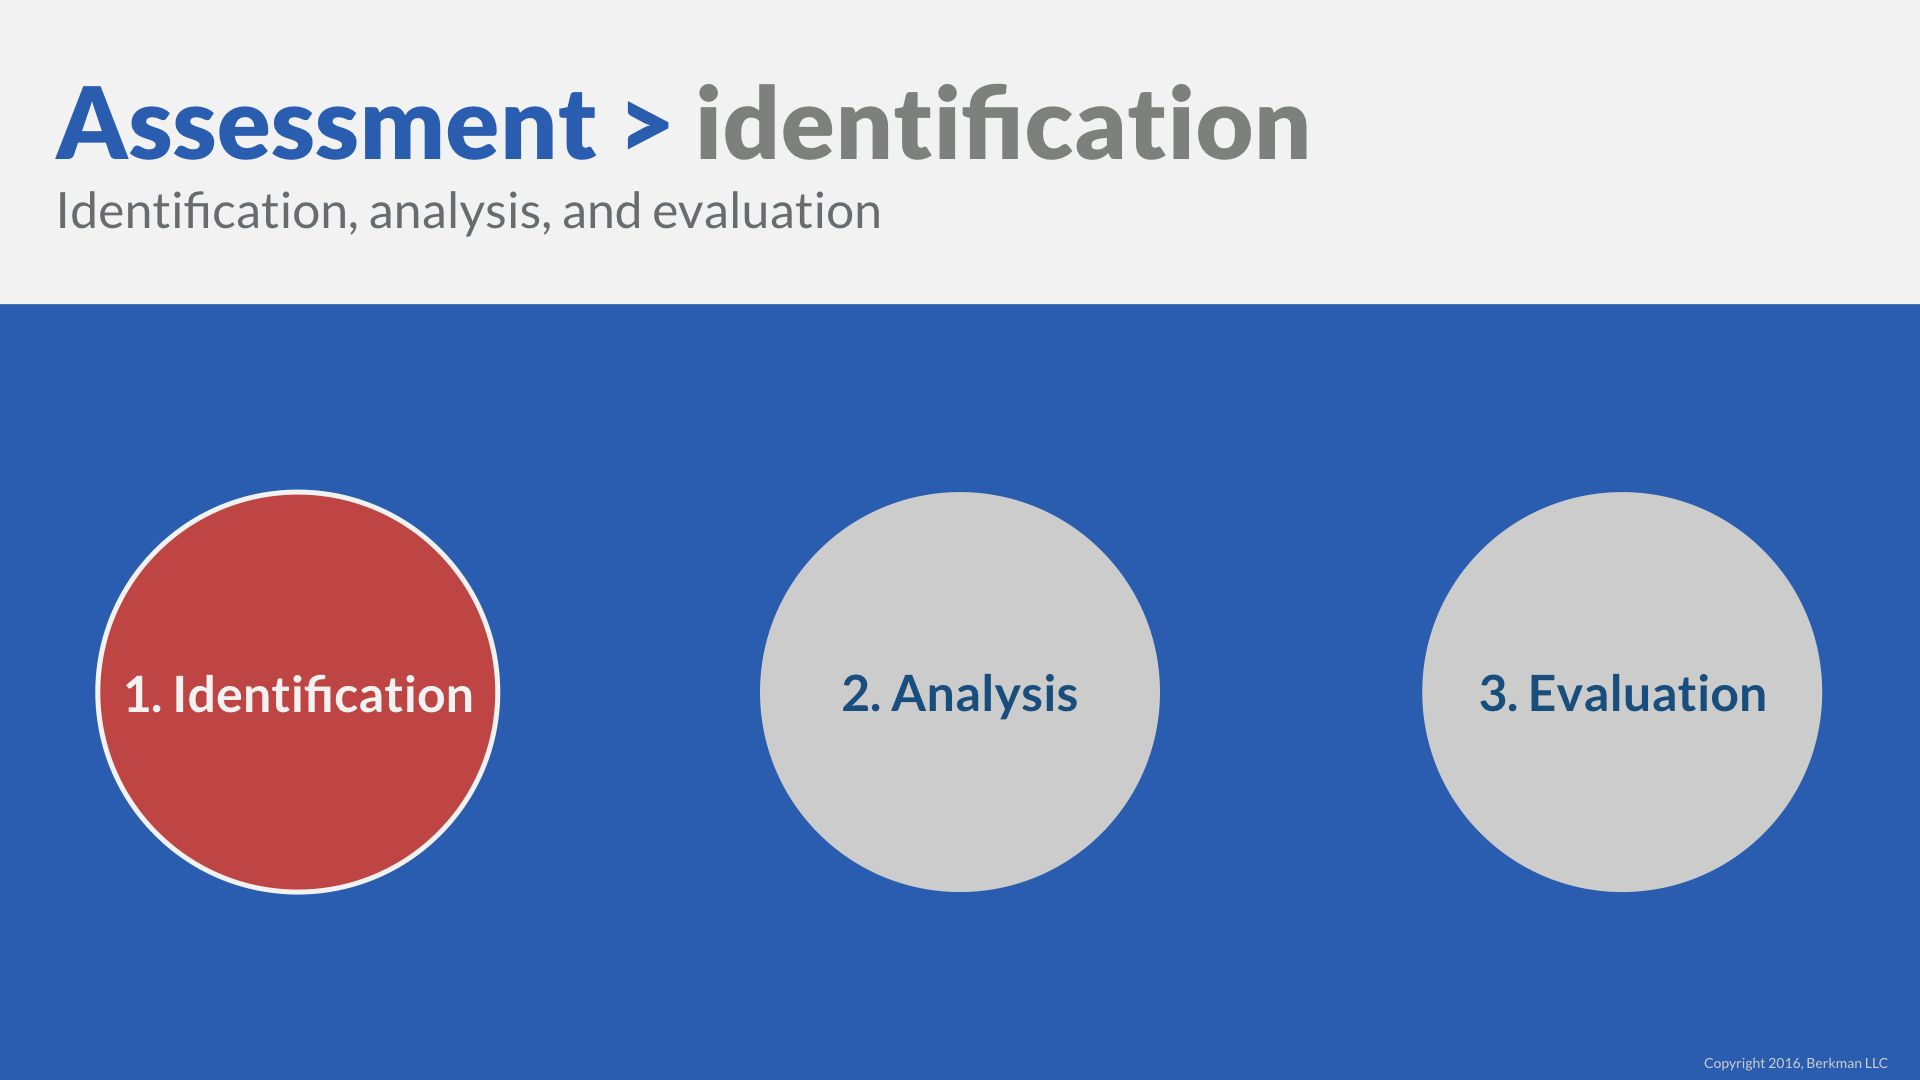 Risk Identification: the first step in risk assessment